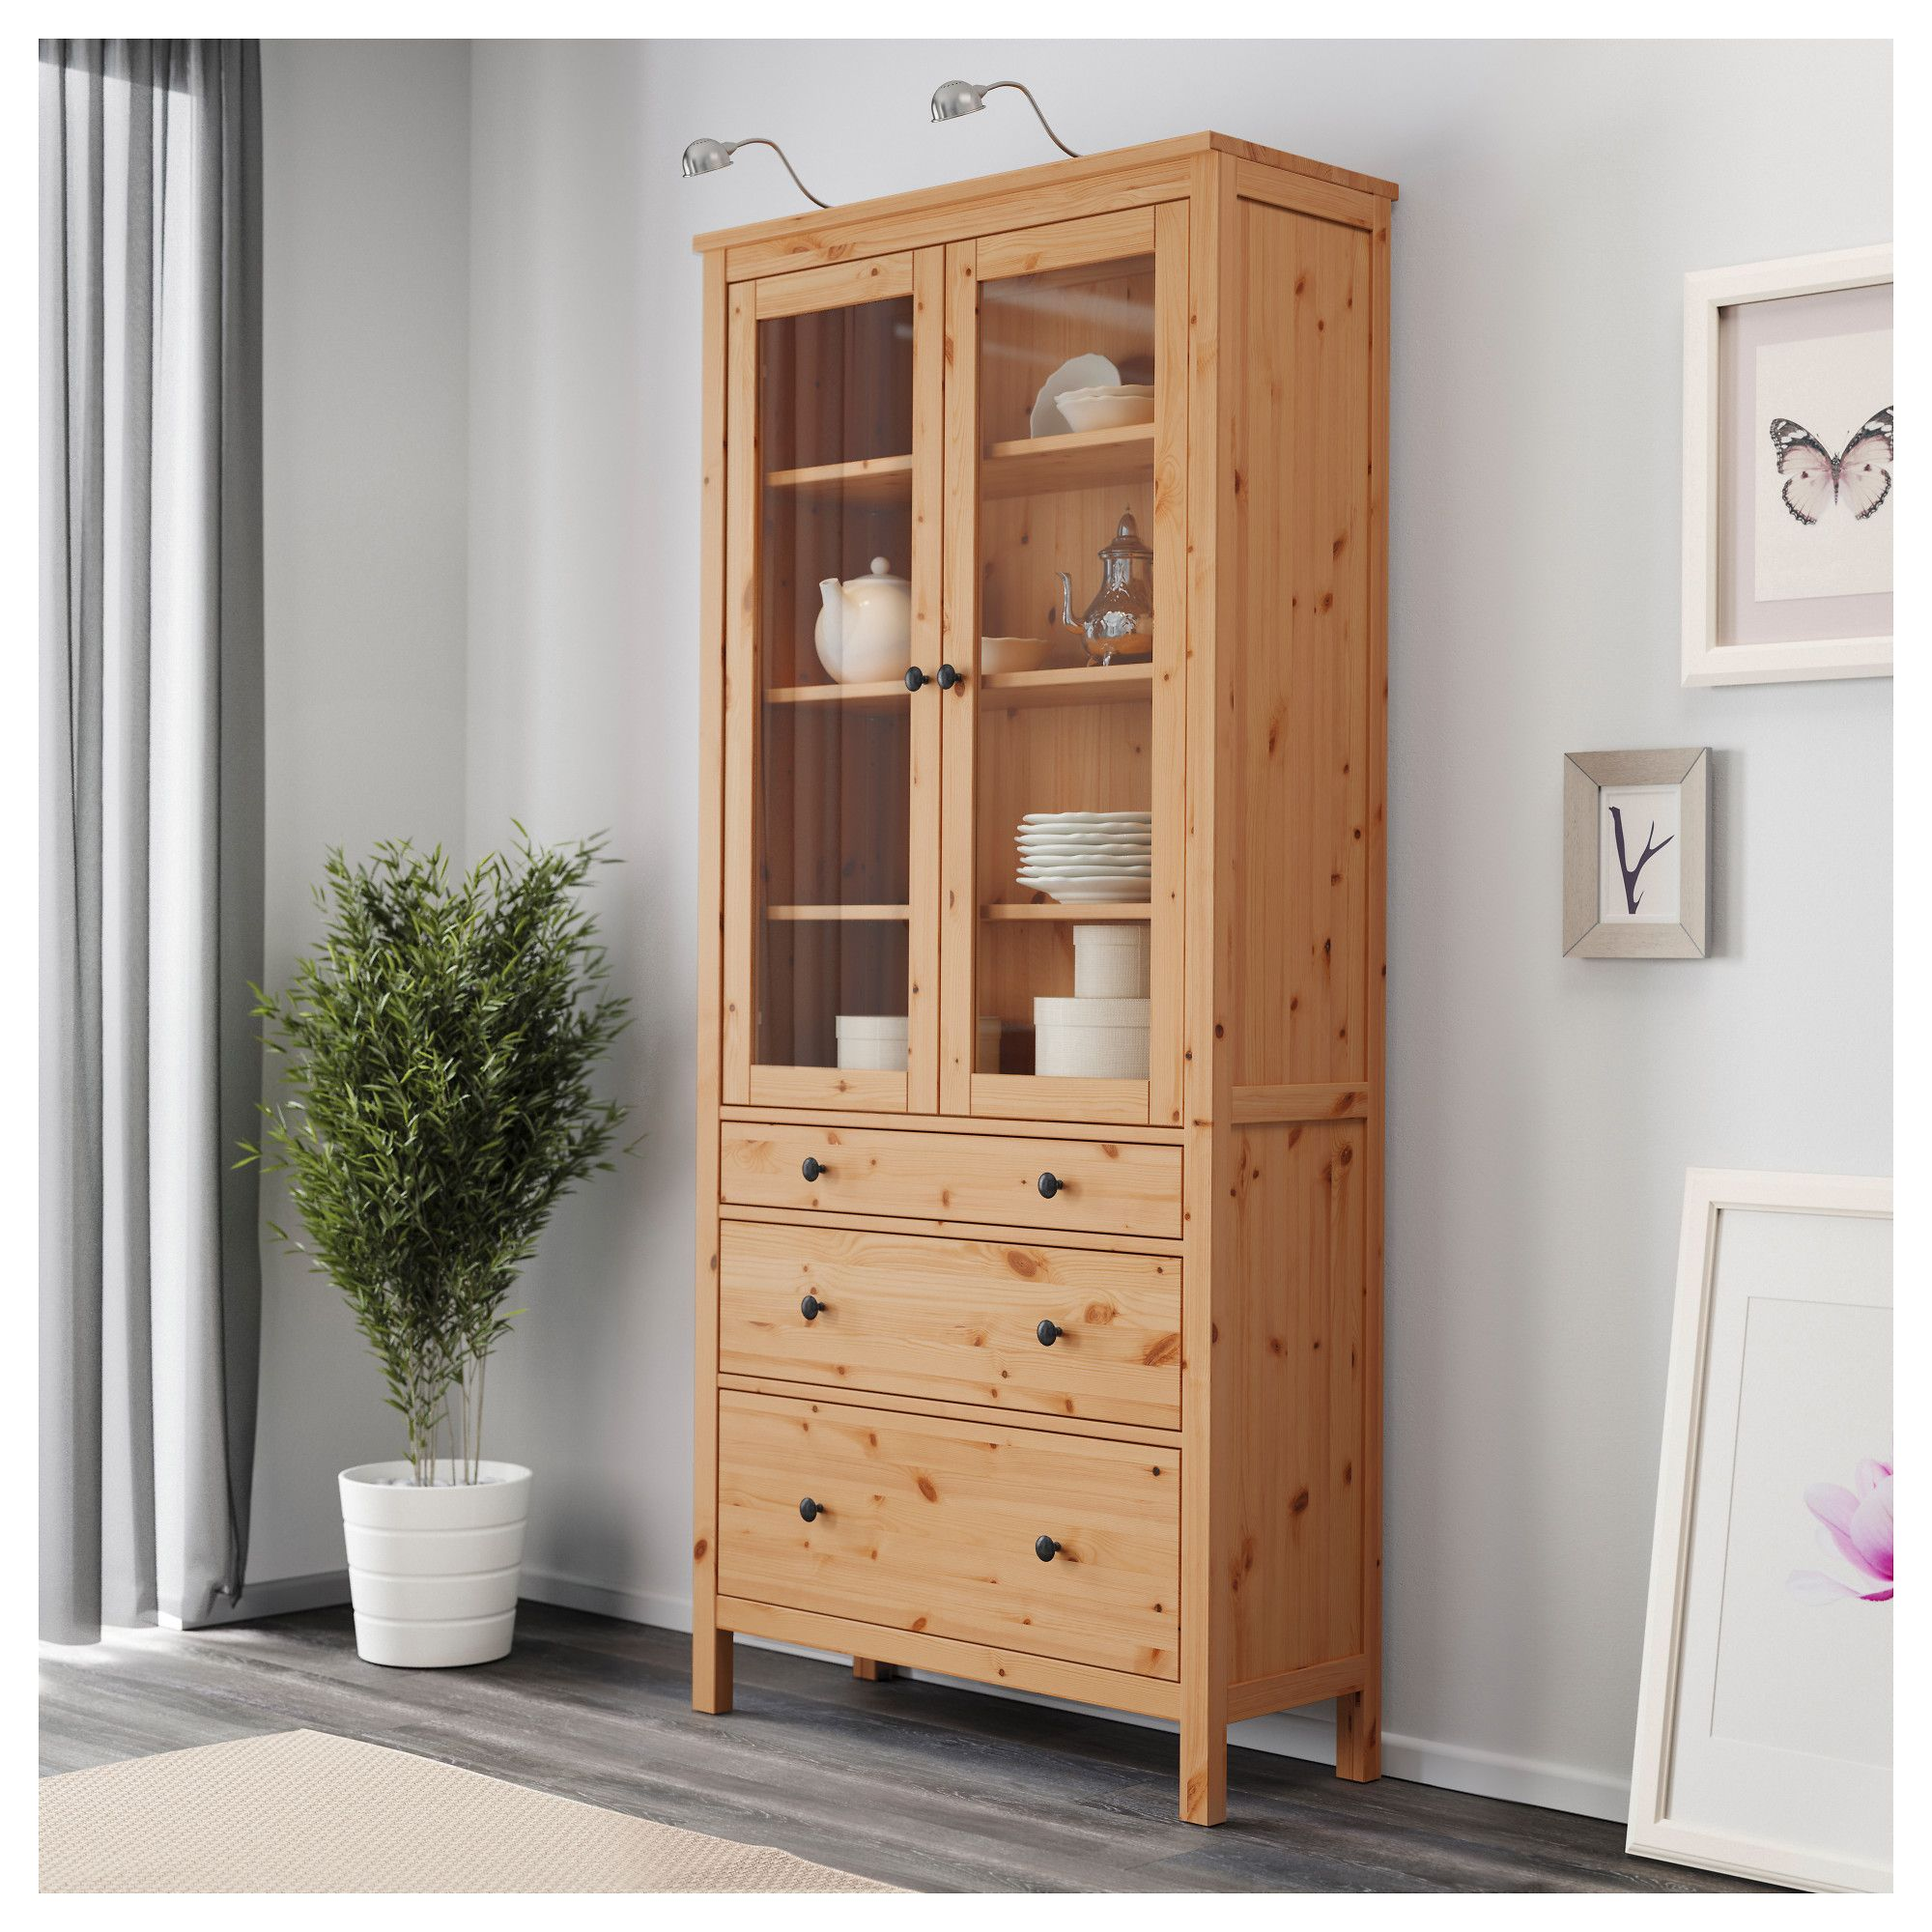 Ikea Hemnes Glass Door Cabinet With 3 Drawers Solid Wood Has A Natural Feel